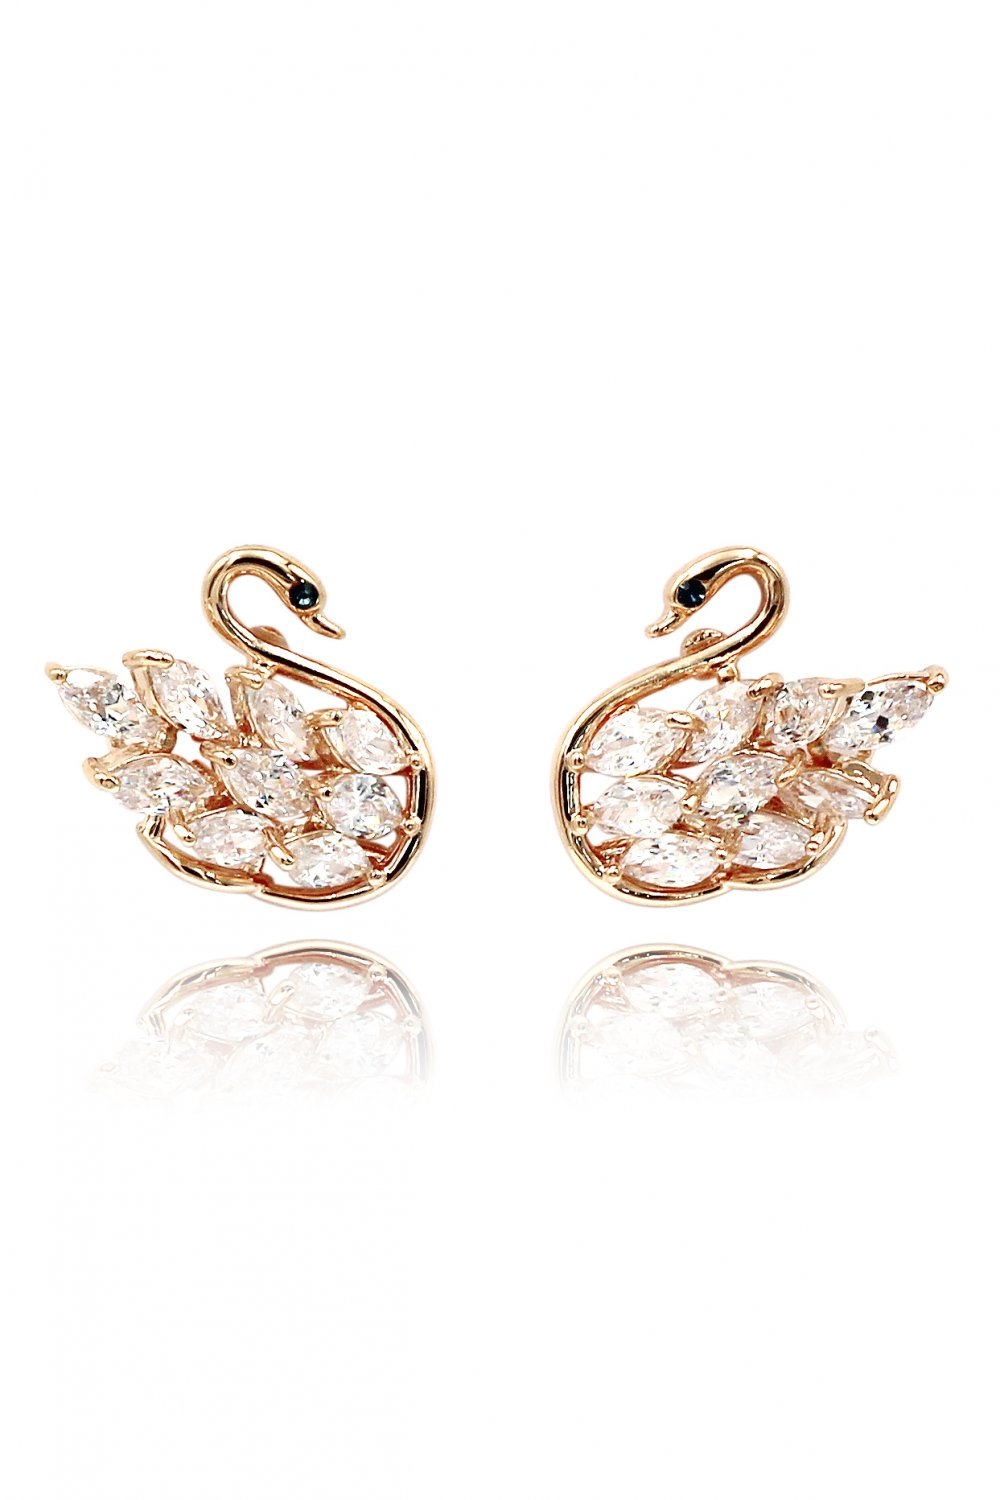 Inlaid crystal swan rose gold earrings